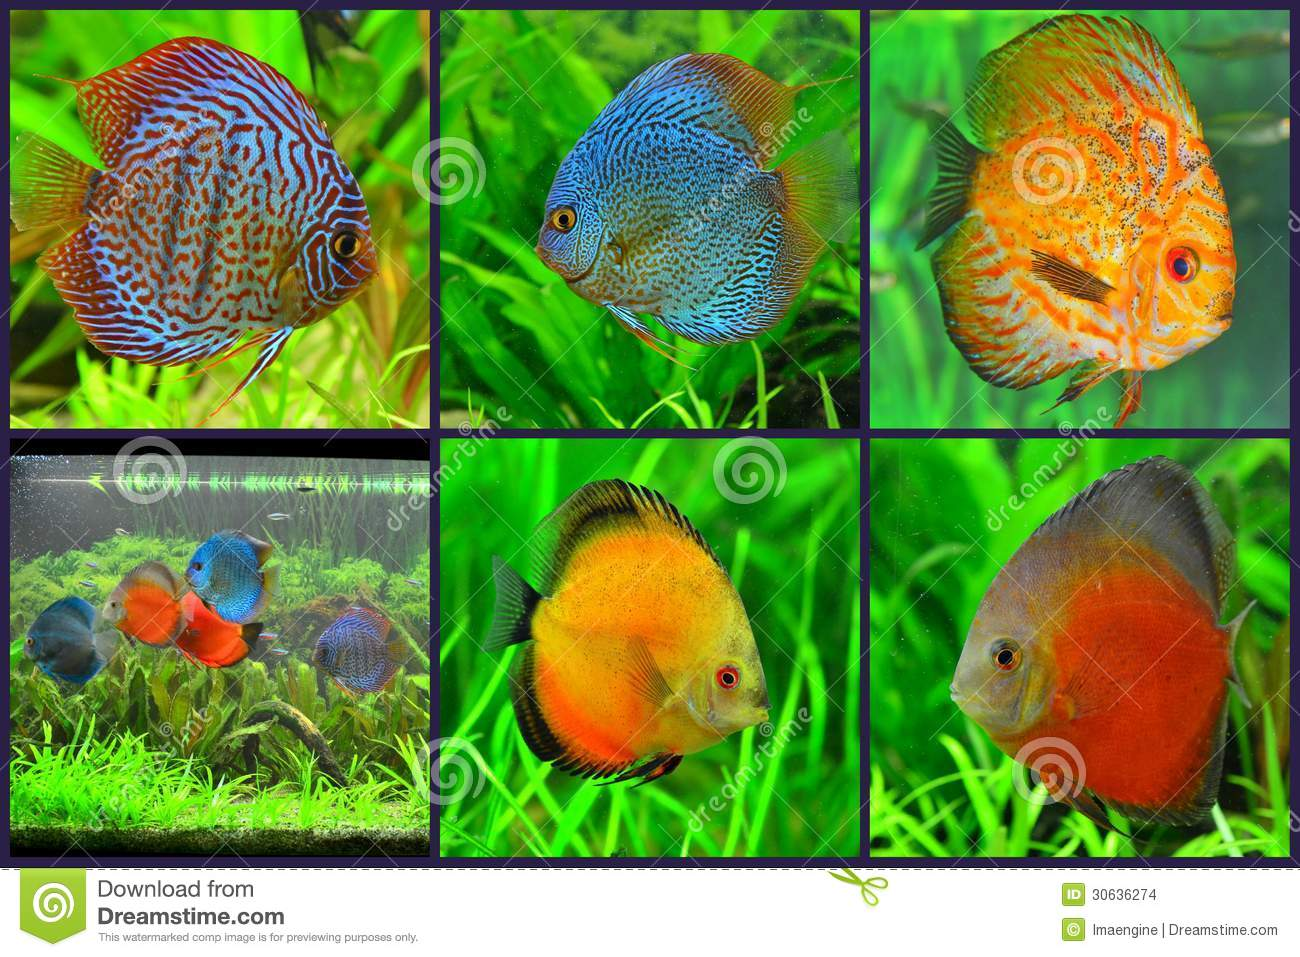 Fish Tank Animals : Aquarium - Discus Fish Varieties Collage Stock Images - Image ...